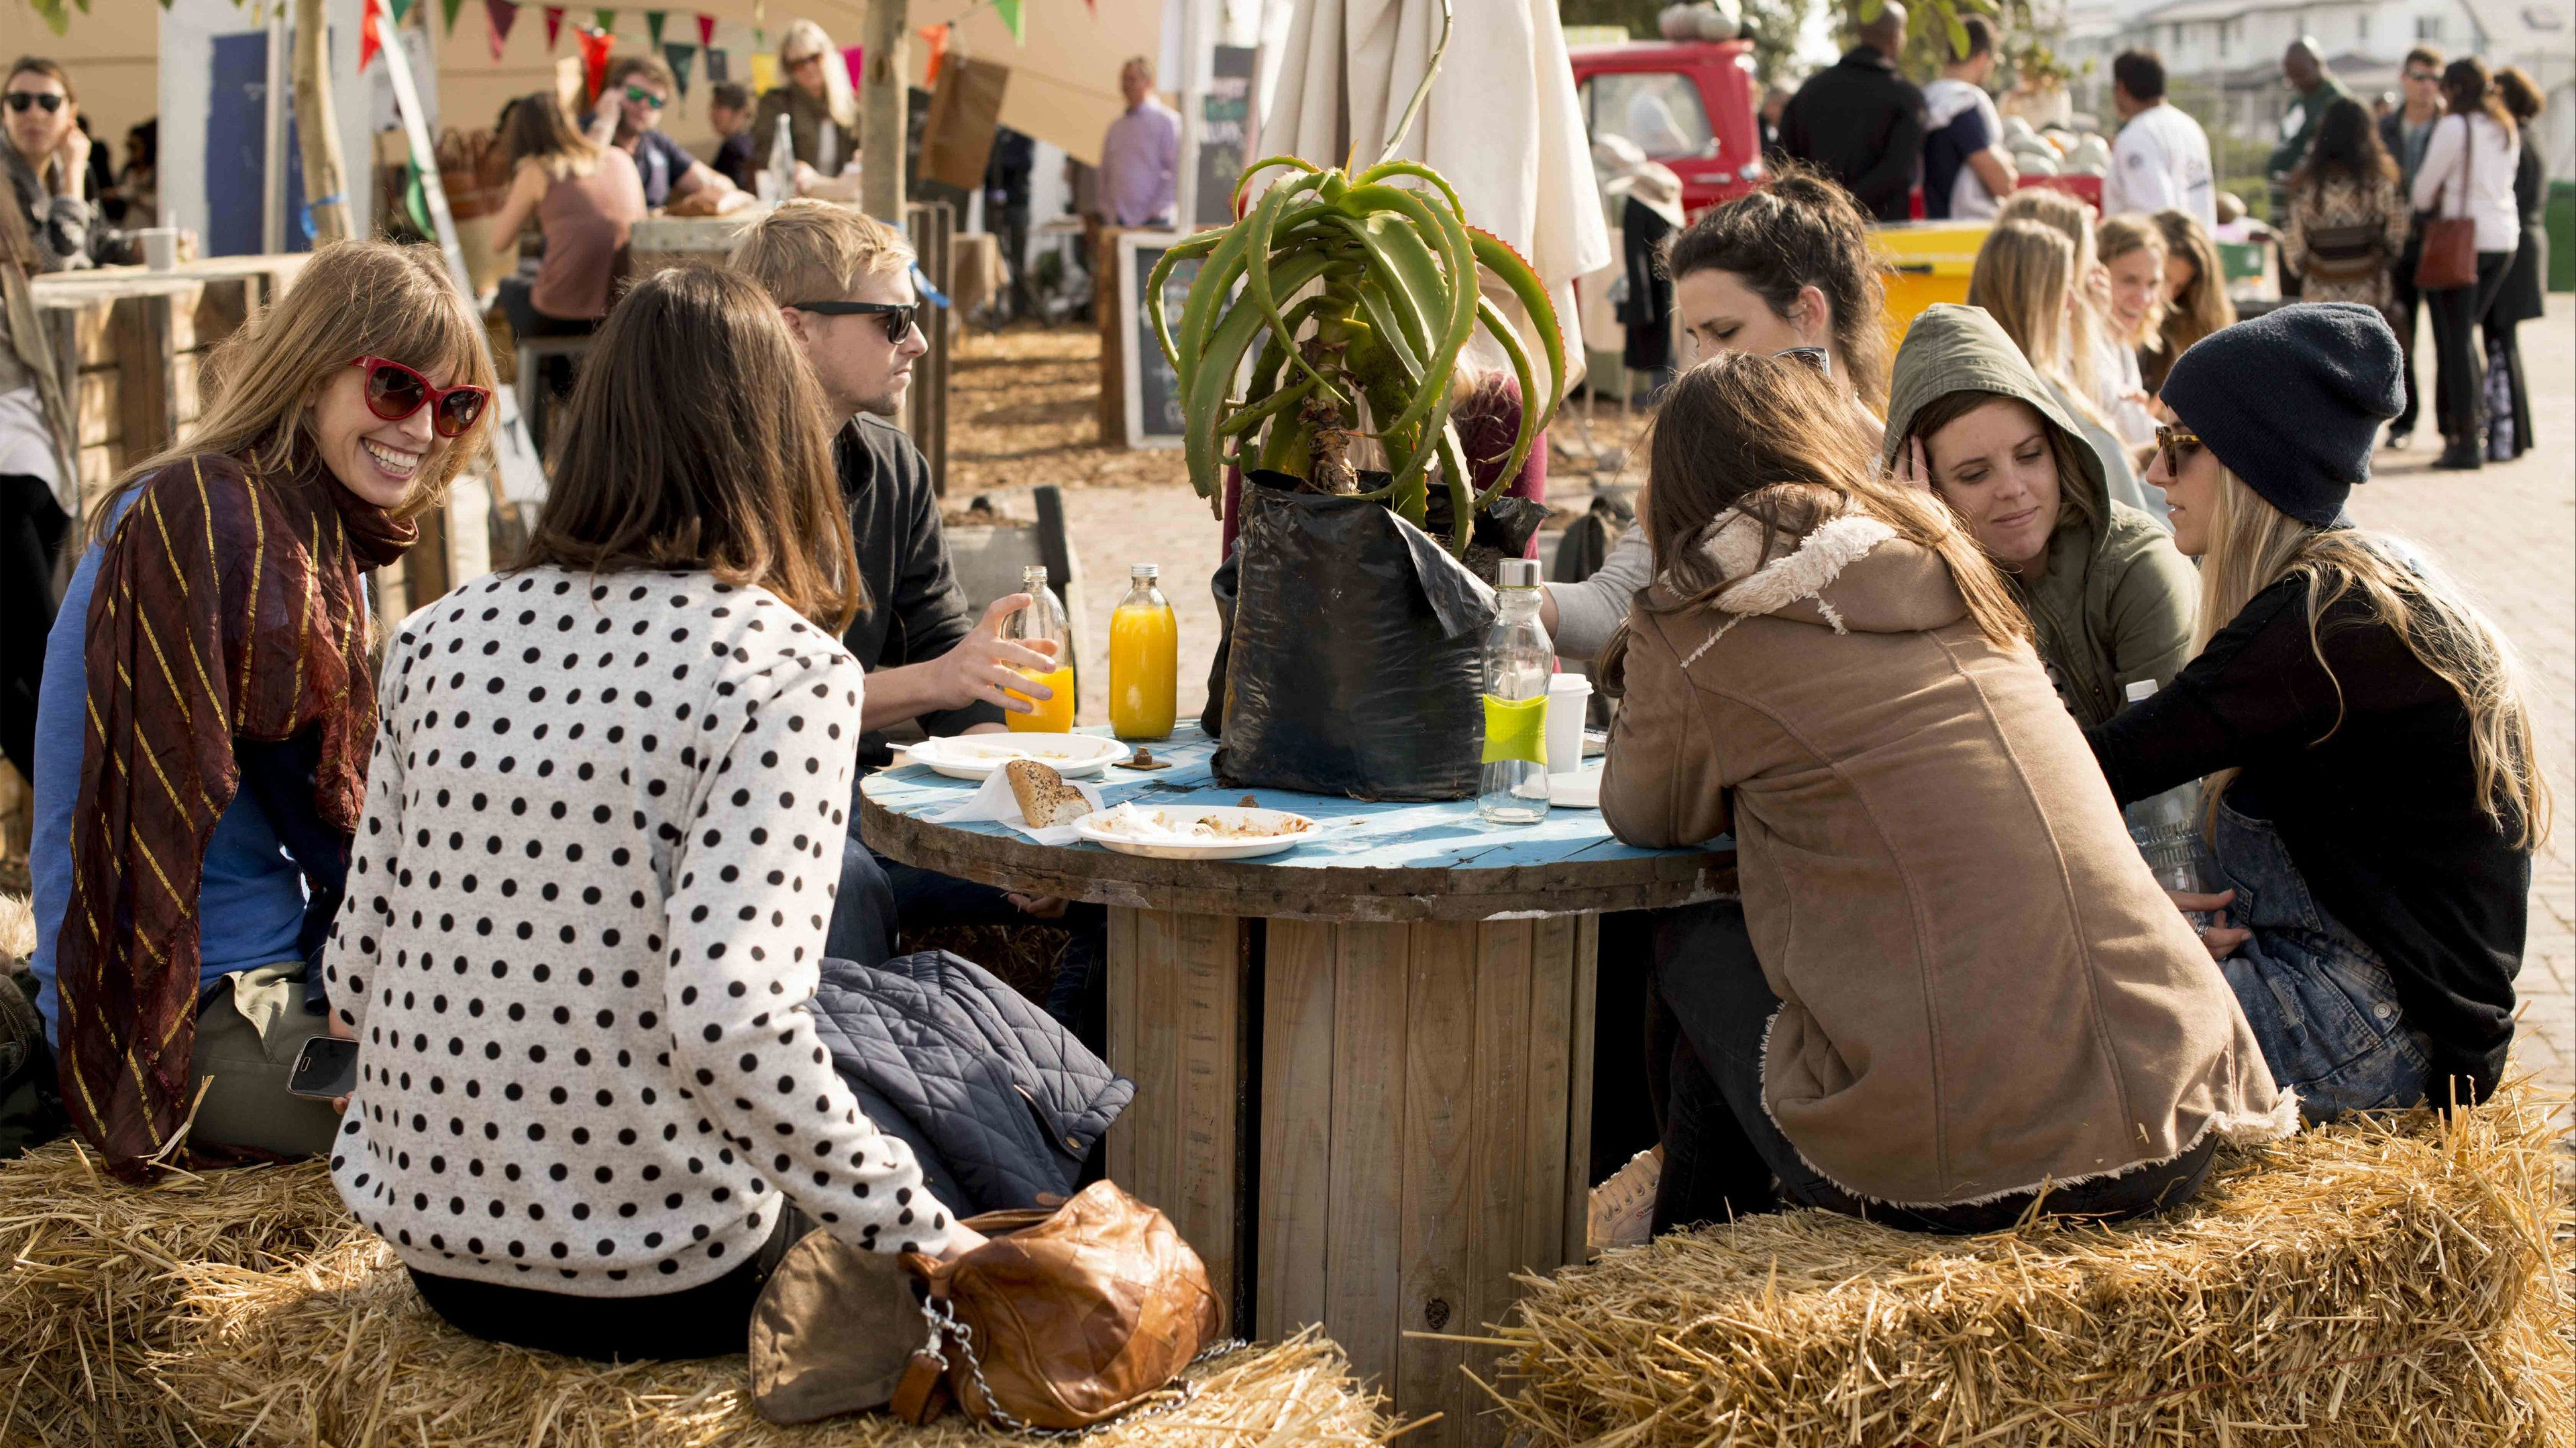 Group eating at a table with haystack benches at a market in Cape Town